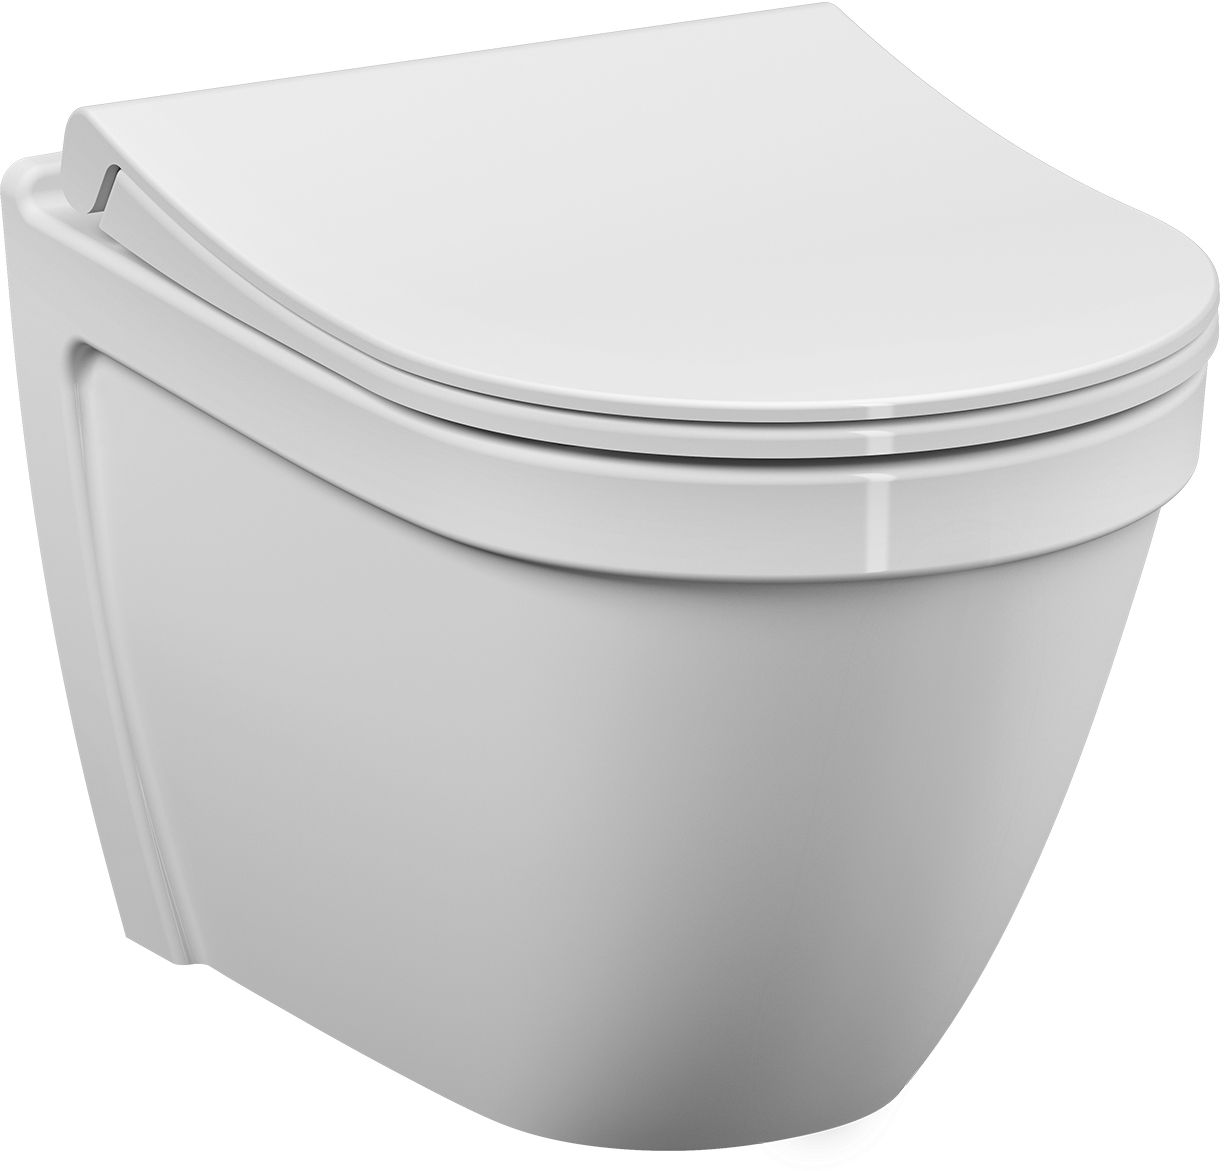 WC-istuin Vitra S50 Slim Rim-Ex seinämalli Soft Close-kannella